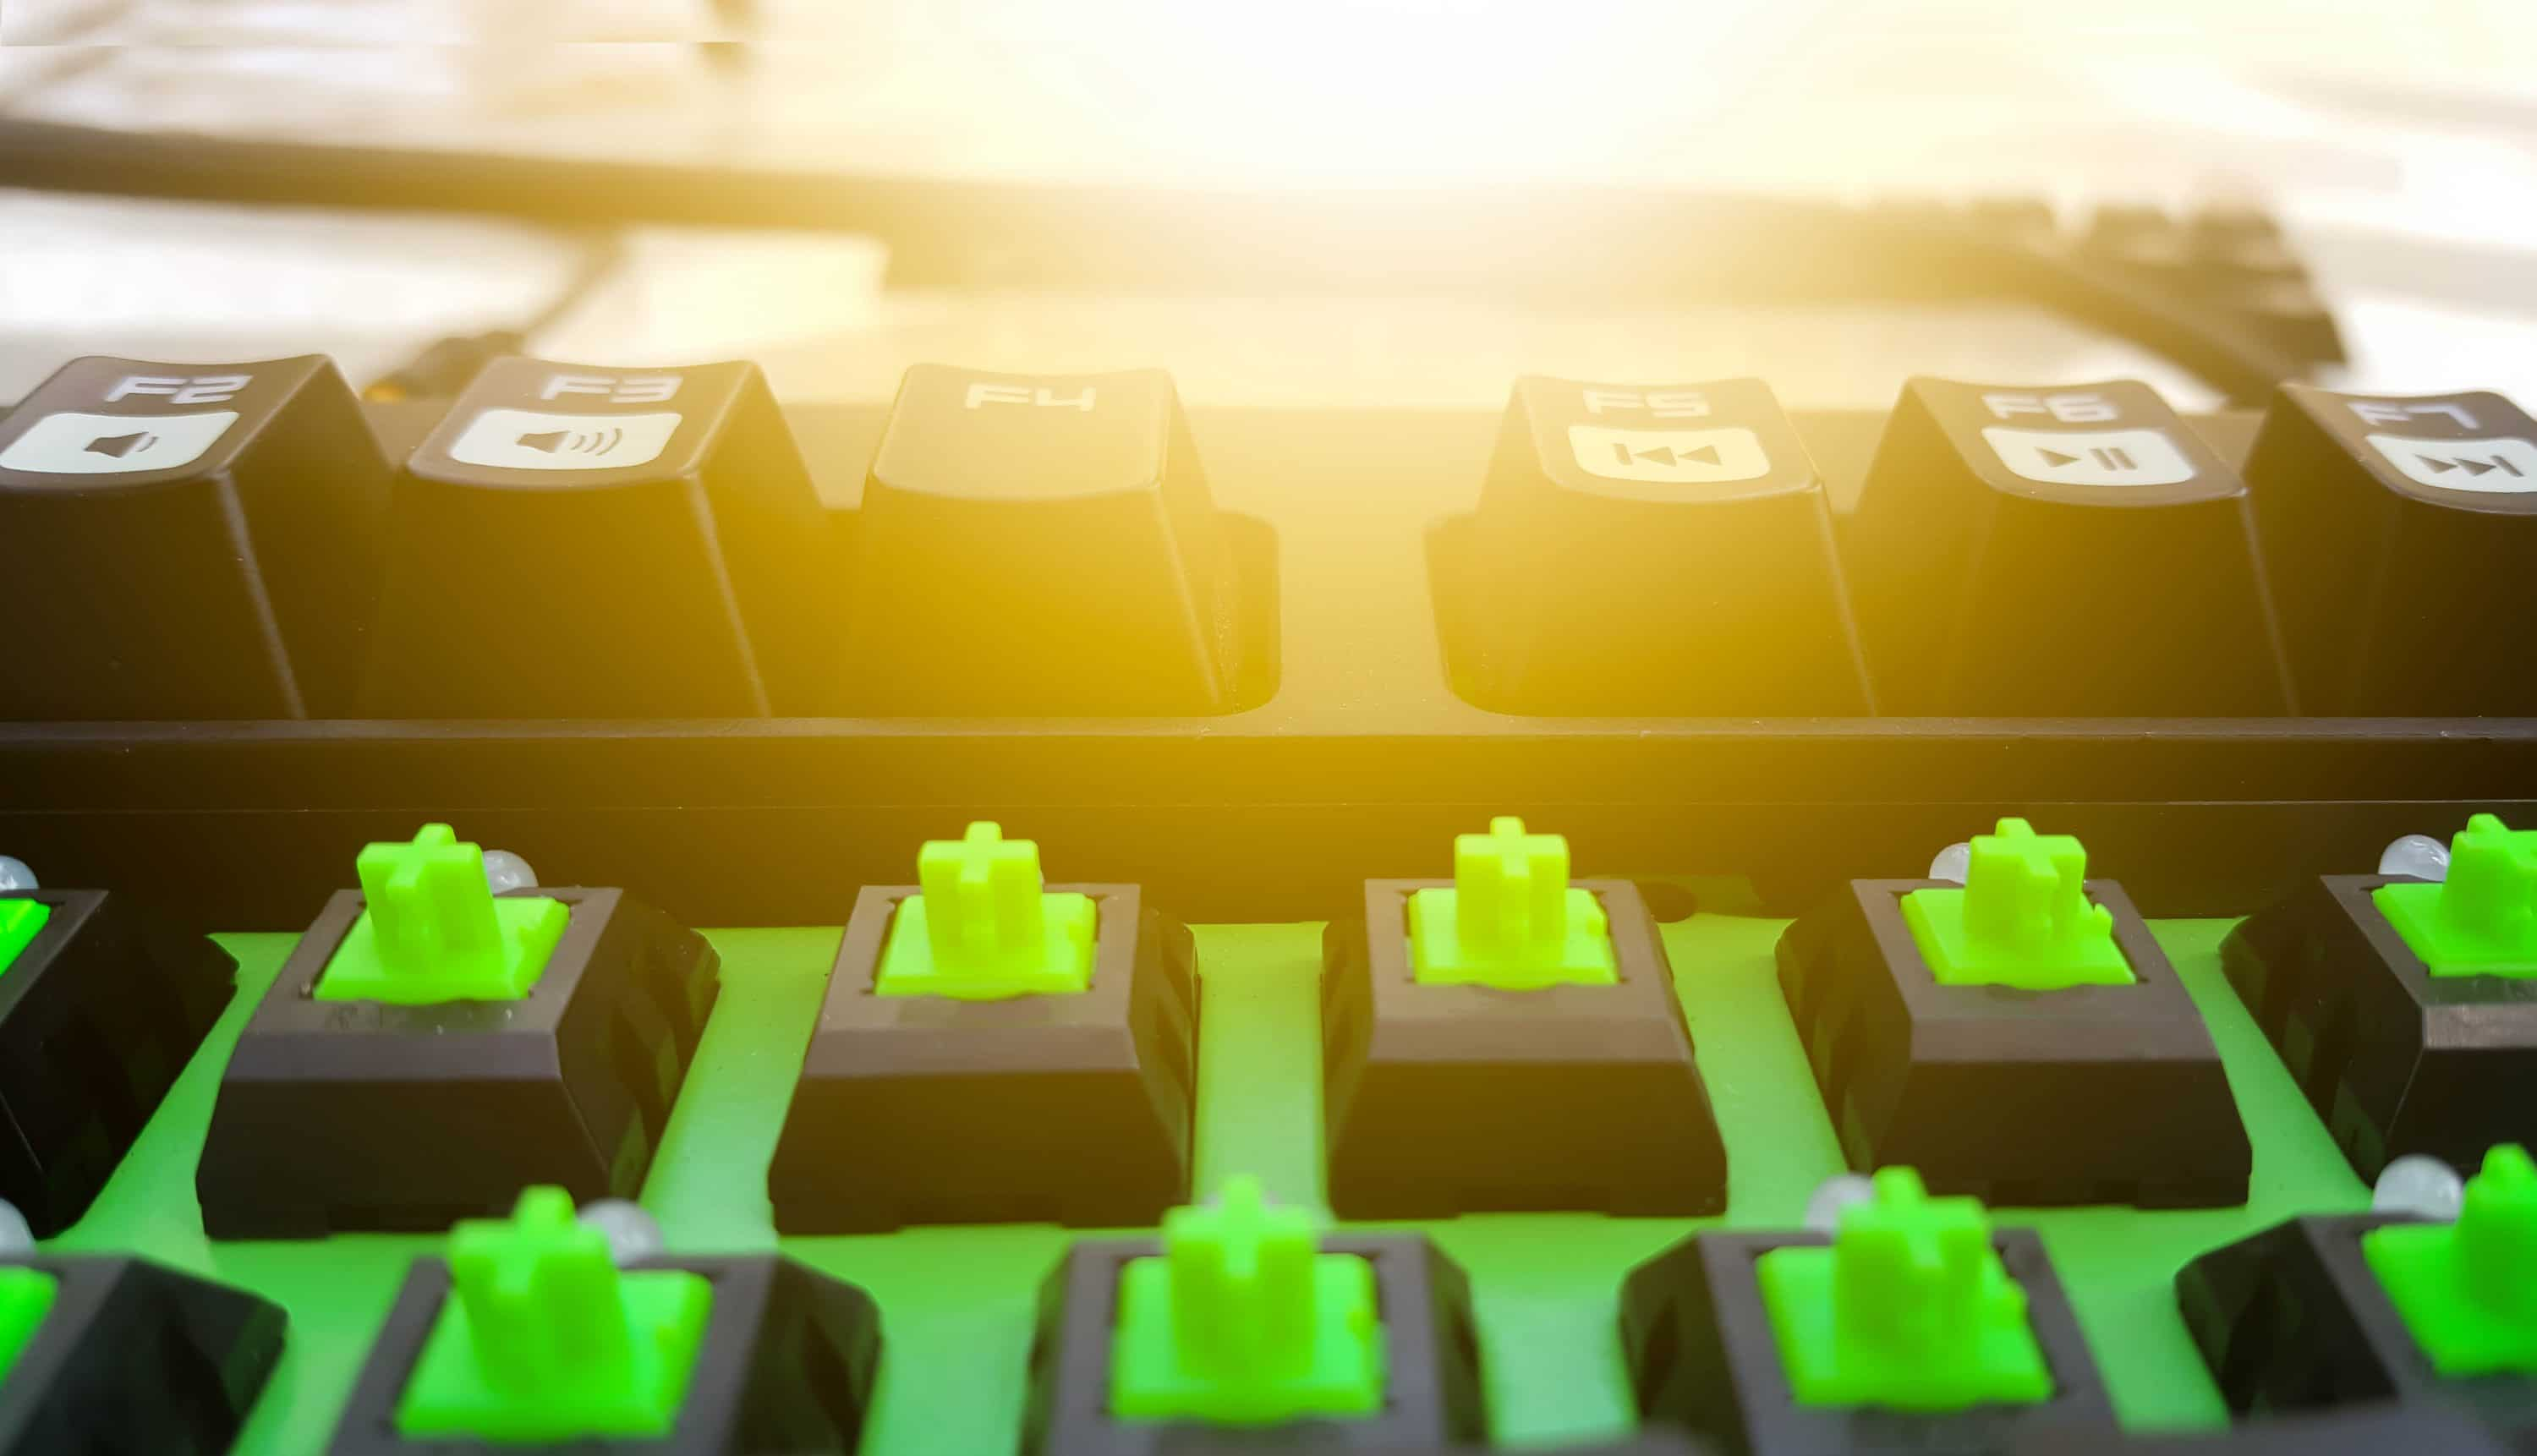 Basic Tutorials Guide: How to Find the Perfect Gaming Keyboard!